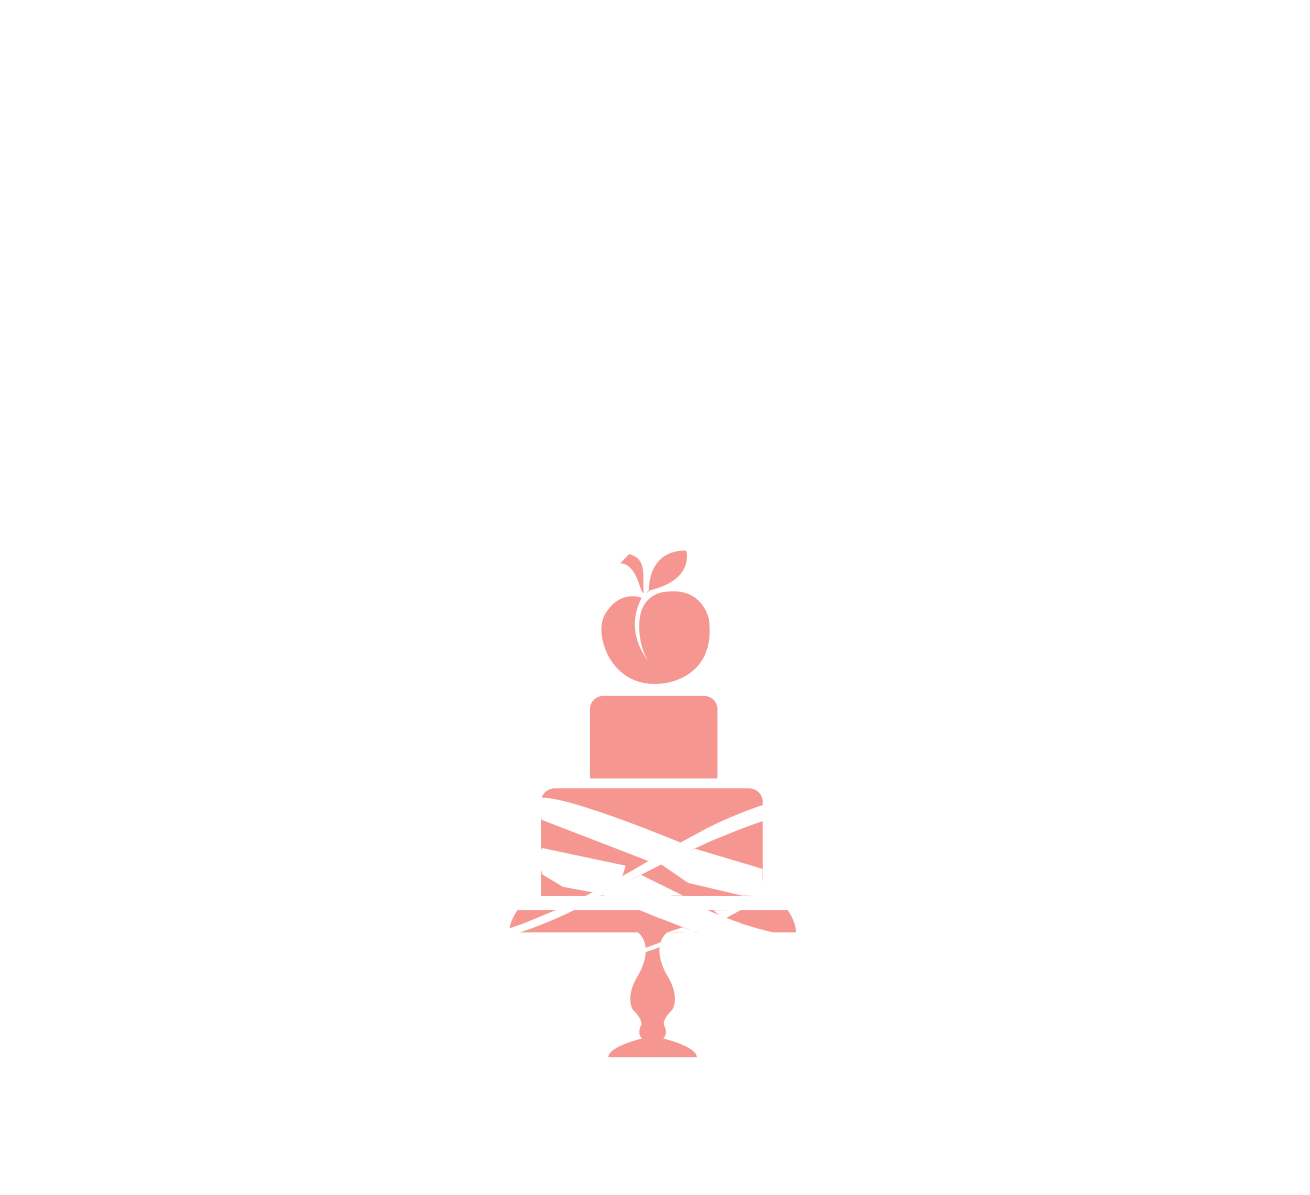 Paula Jacqueline Cakes and Pastries